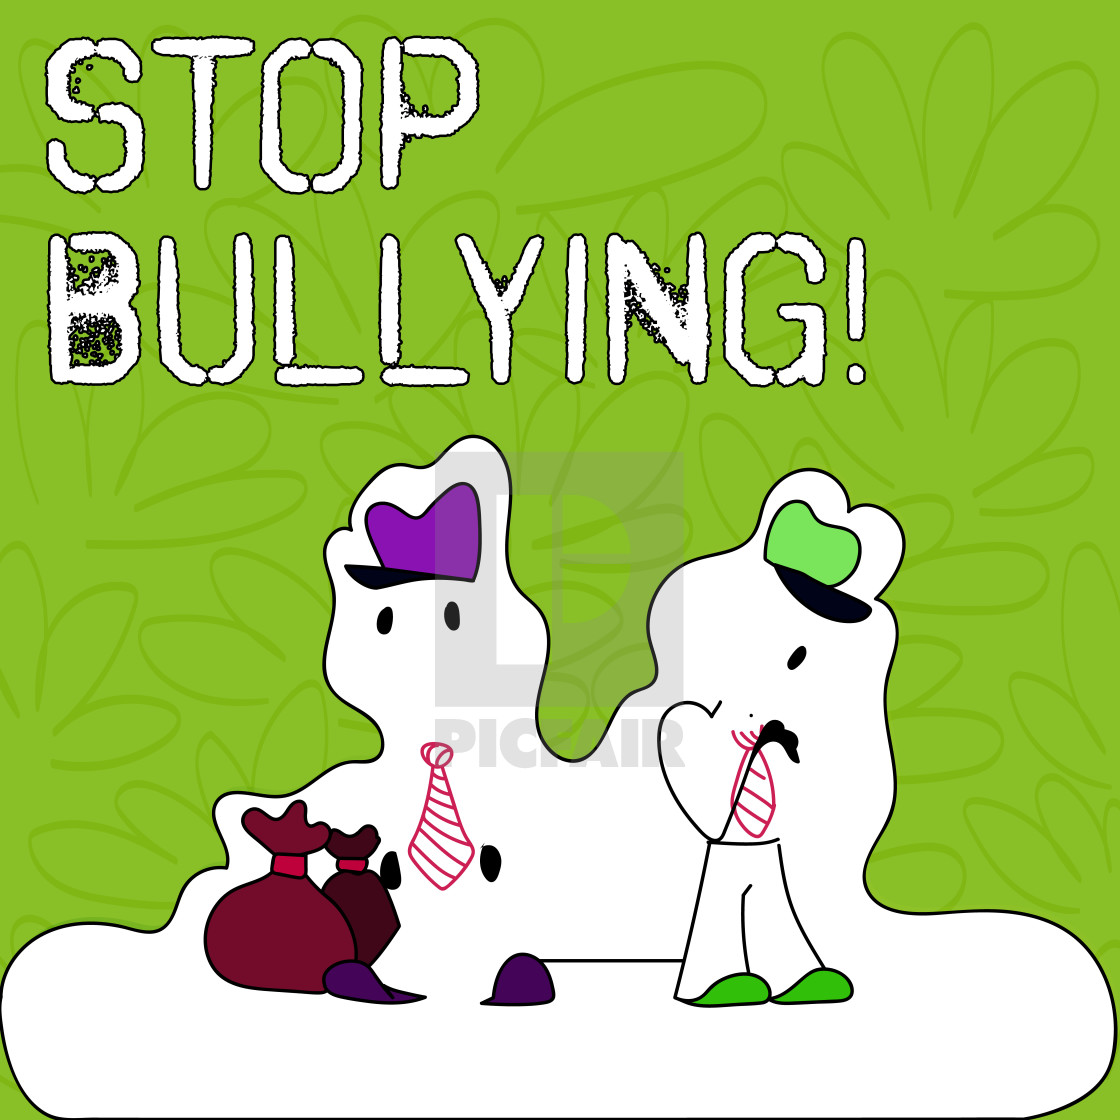 Text sign showing stop. Bullying clipart aggressive behaviour